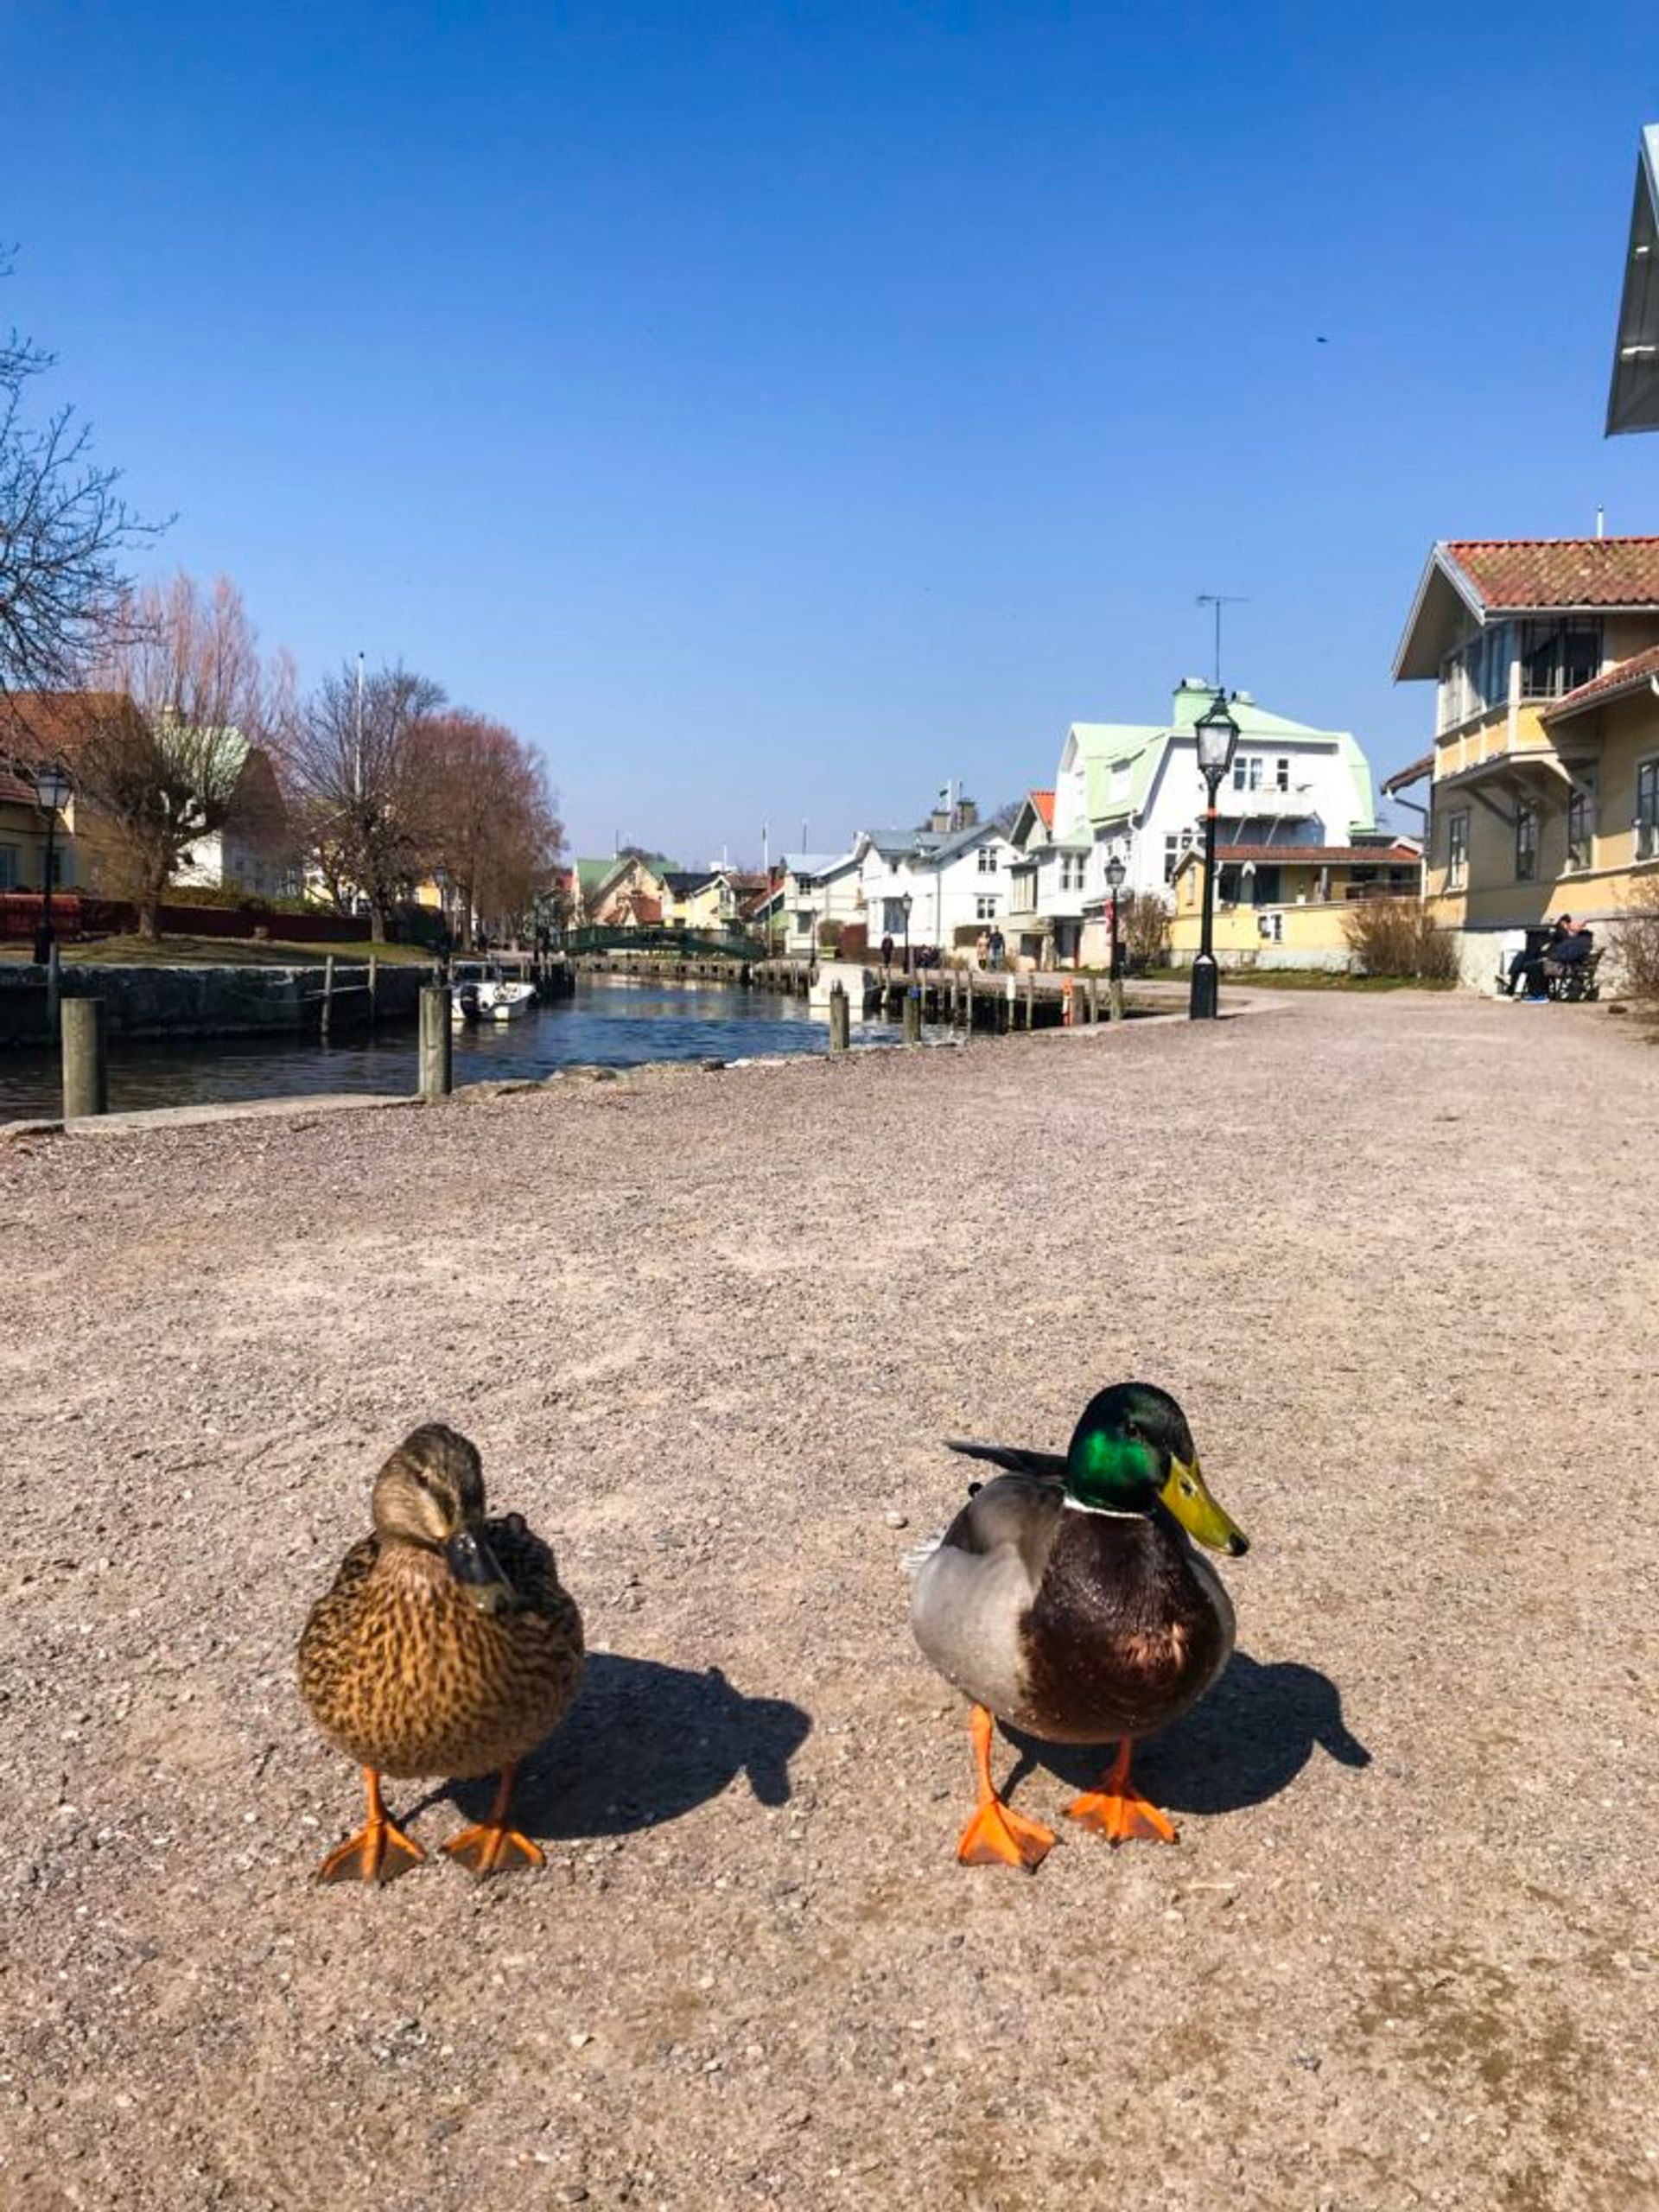 Ducks by the river.